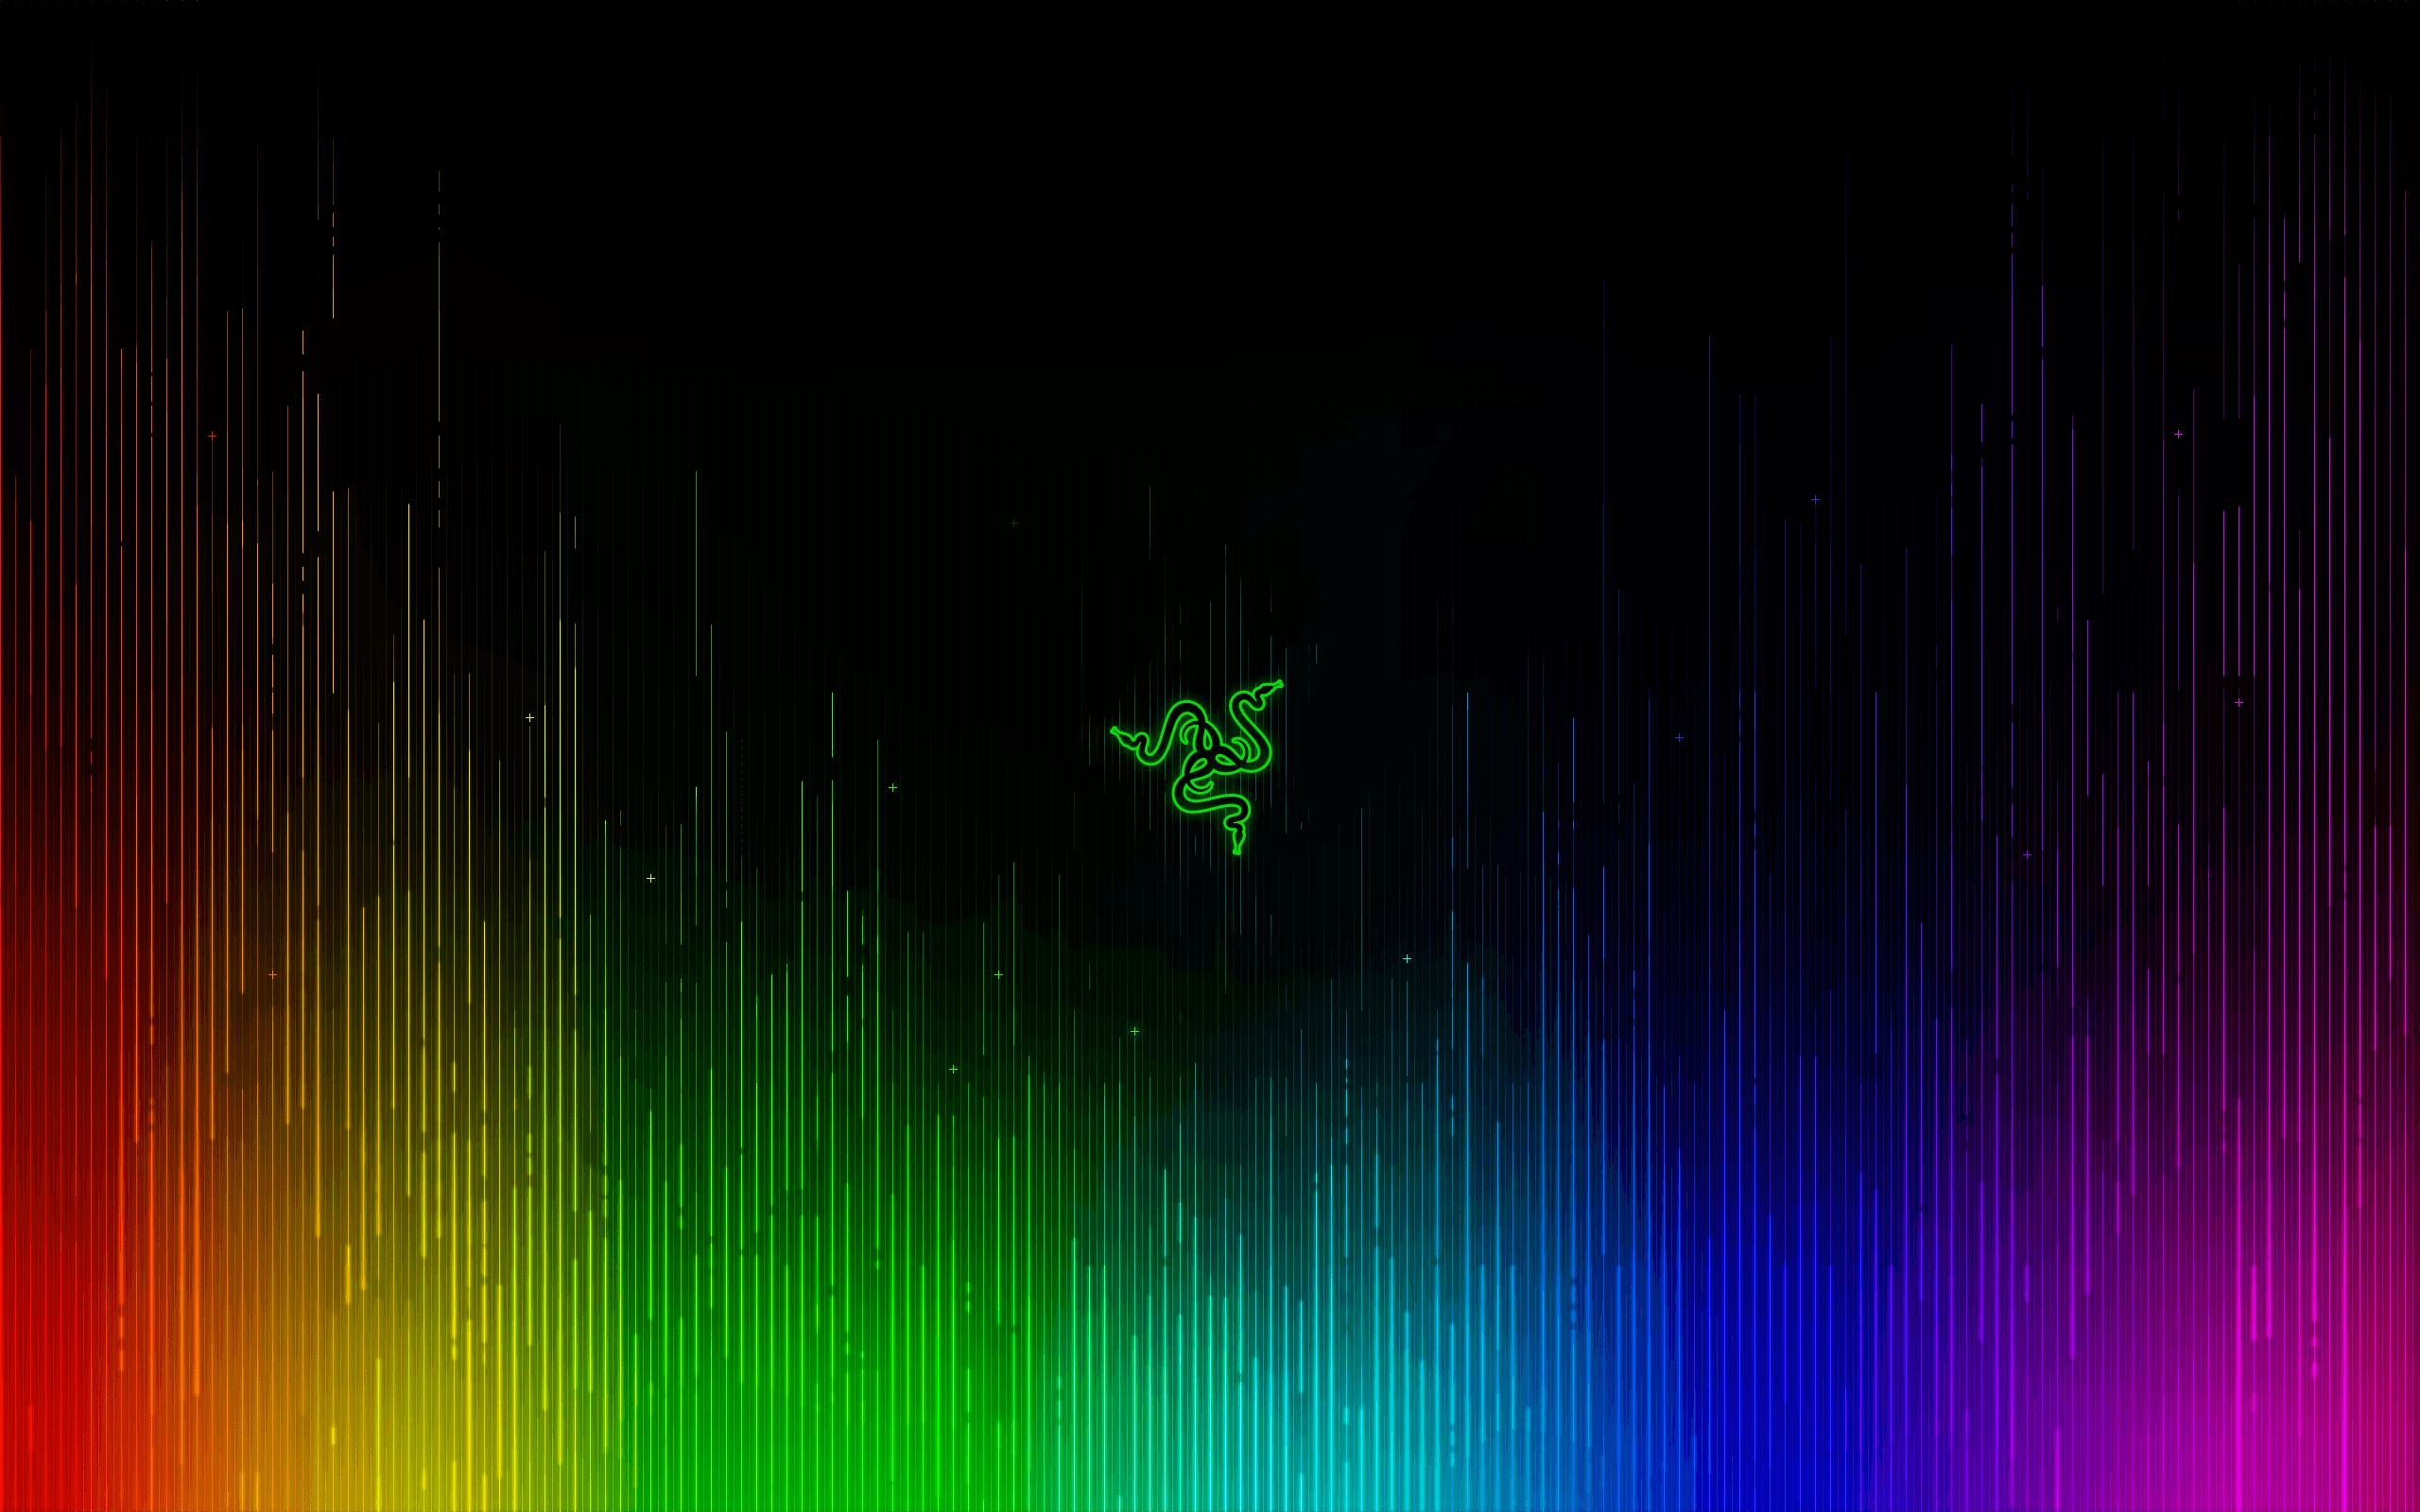 10 Most Popular Razer Chroma Wallpaper 1920x1080 Full Hd 1920 1080 For Pc Desktop Fond D Ecran Pc Fond D Ecran Telephone Fond D Ecran Ordinateur